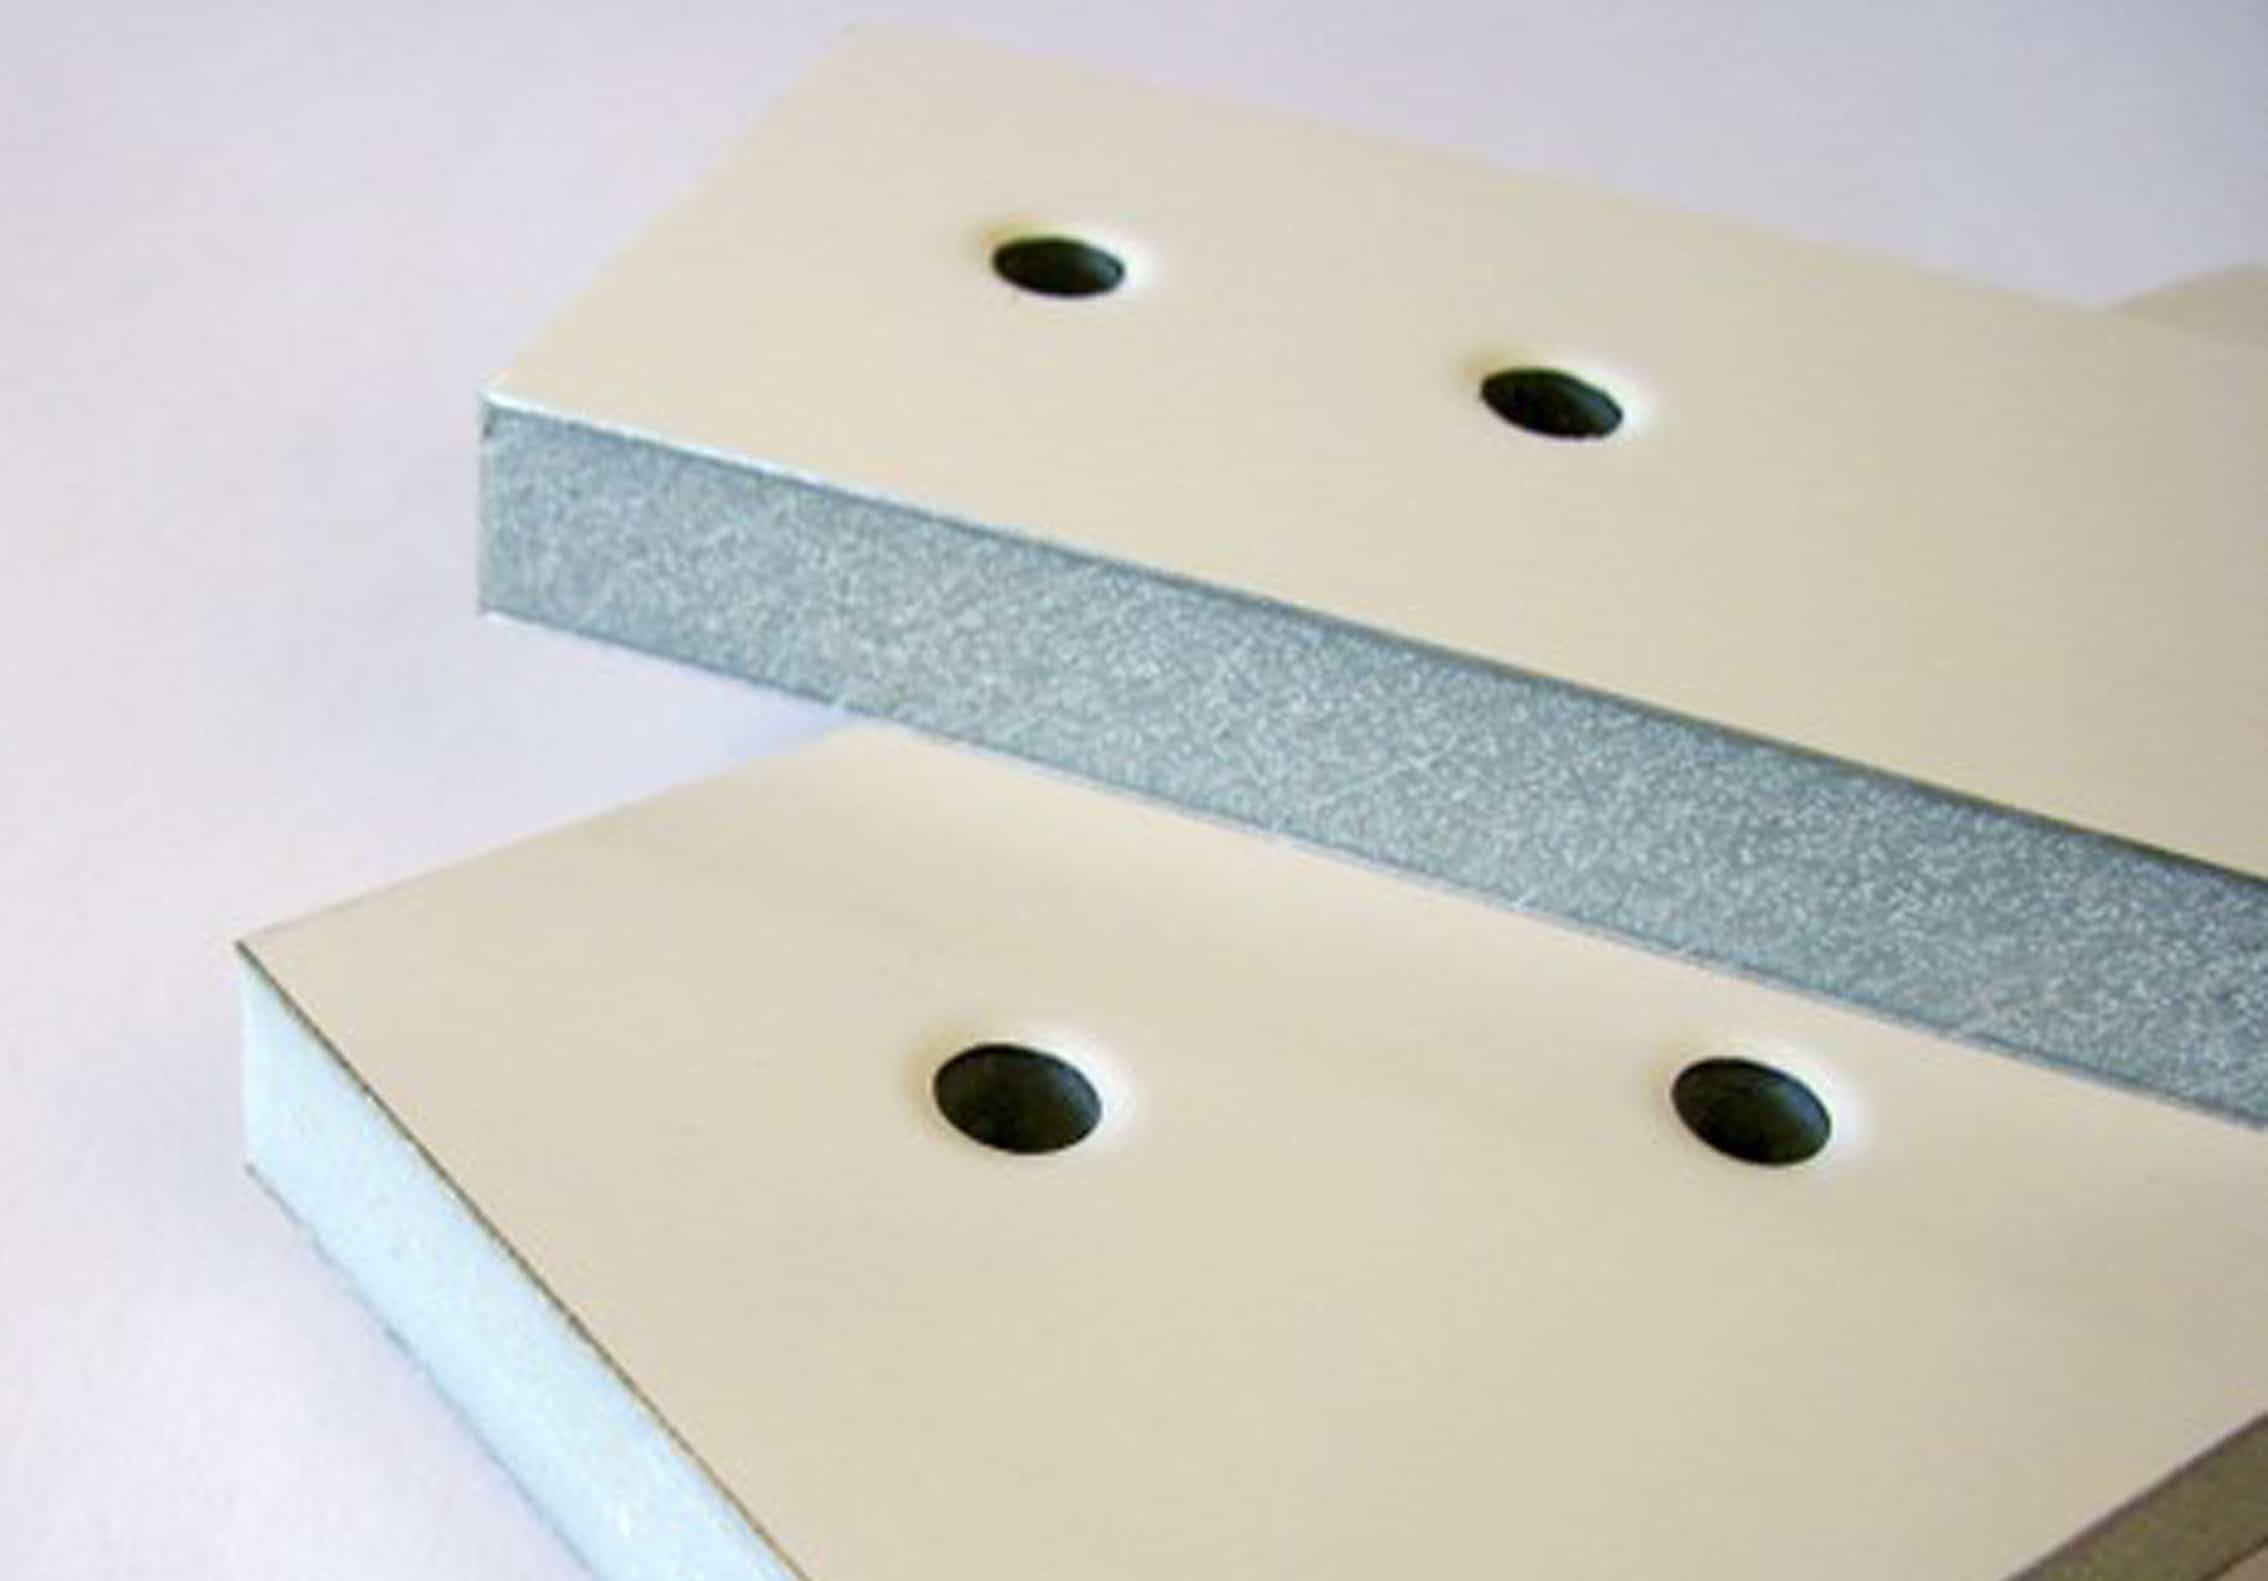 Composite parts with holes